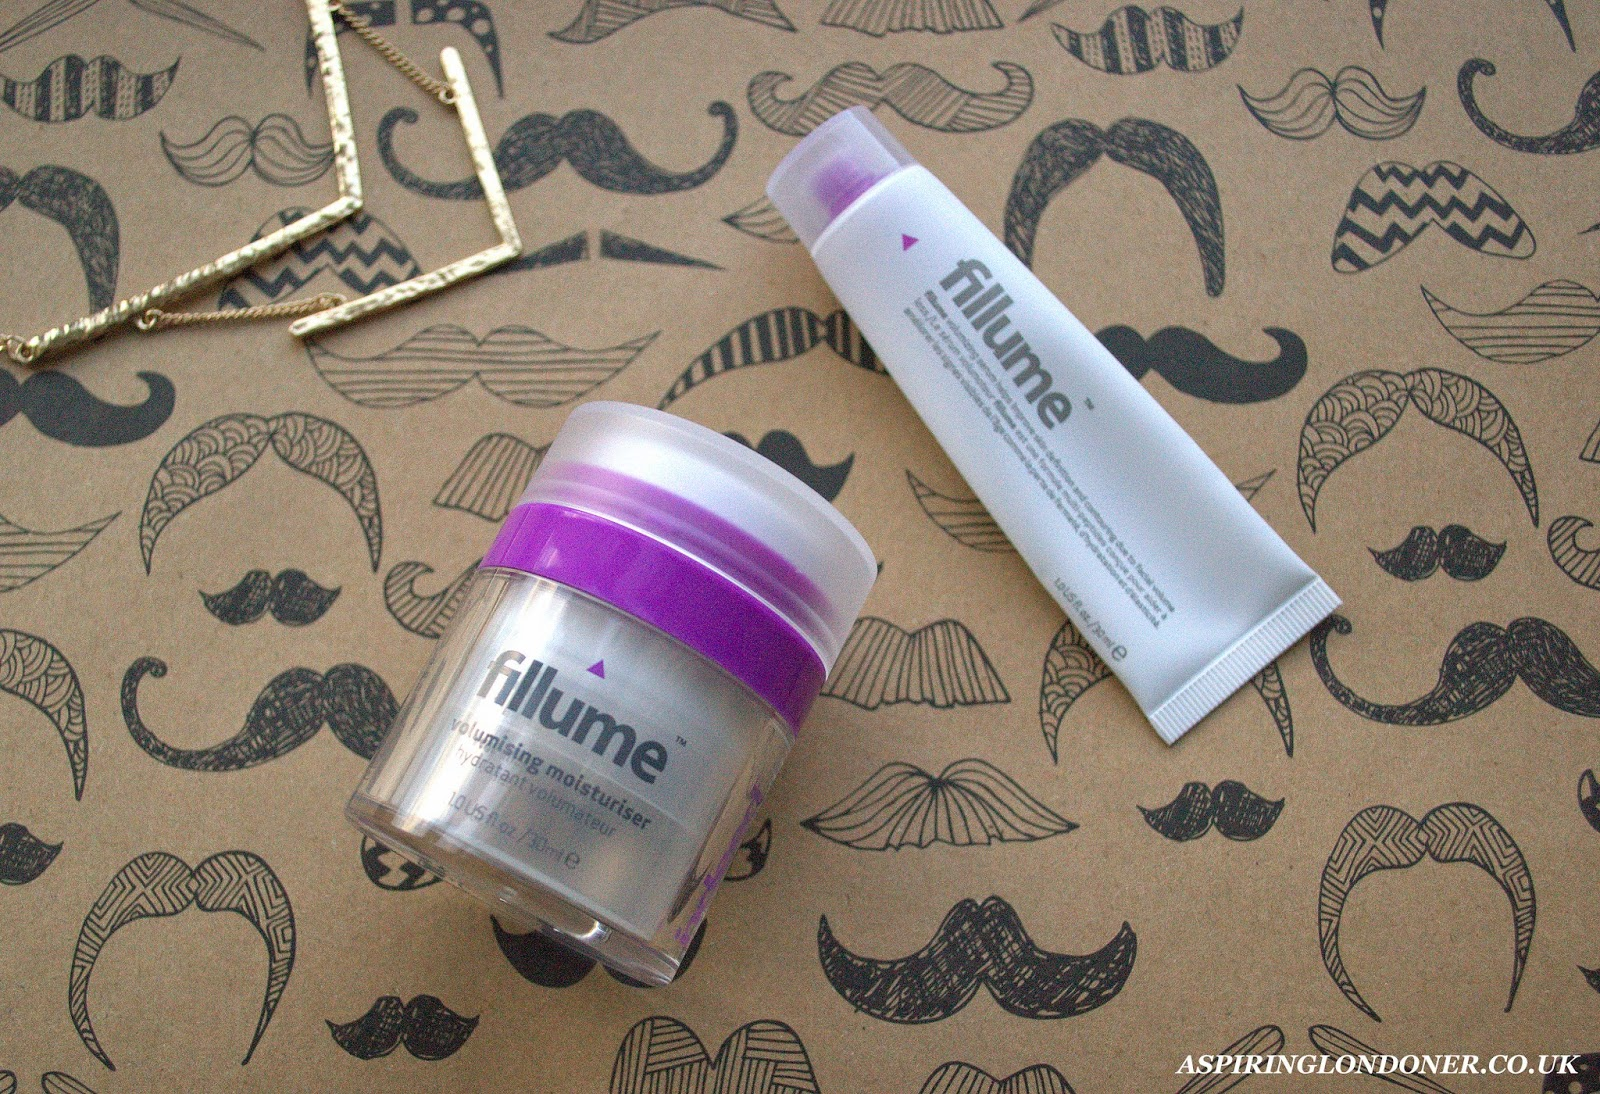 Indeed Labs Fillume Volumising Serum + Moisturiser Review - Aspiring Londoner